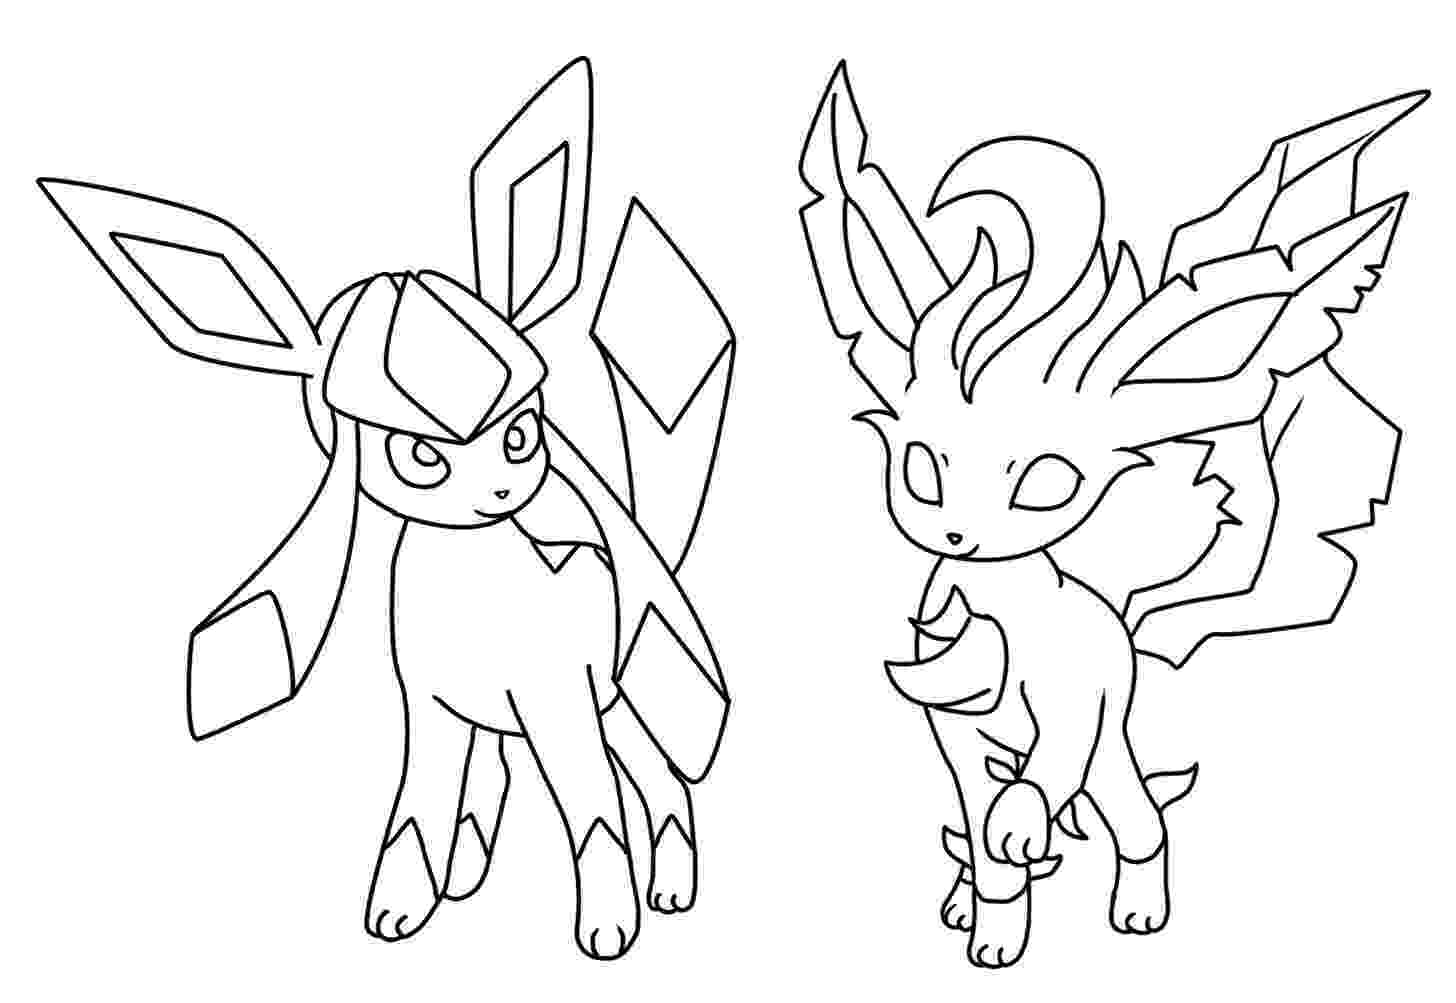 leafeon coloring pages pokemon leafeon coloring pages coloring pages pages leafeon coloring